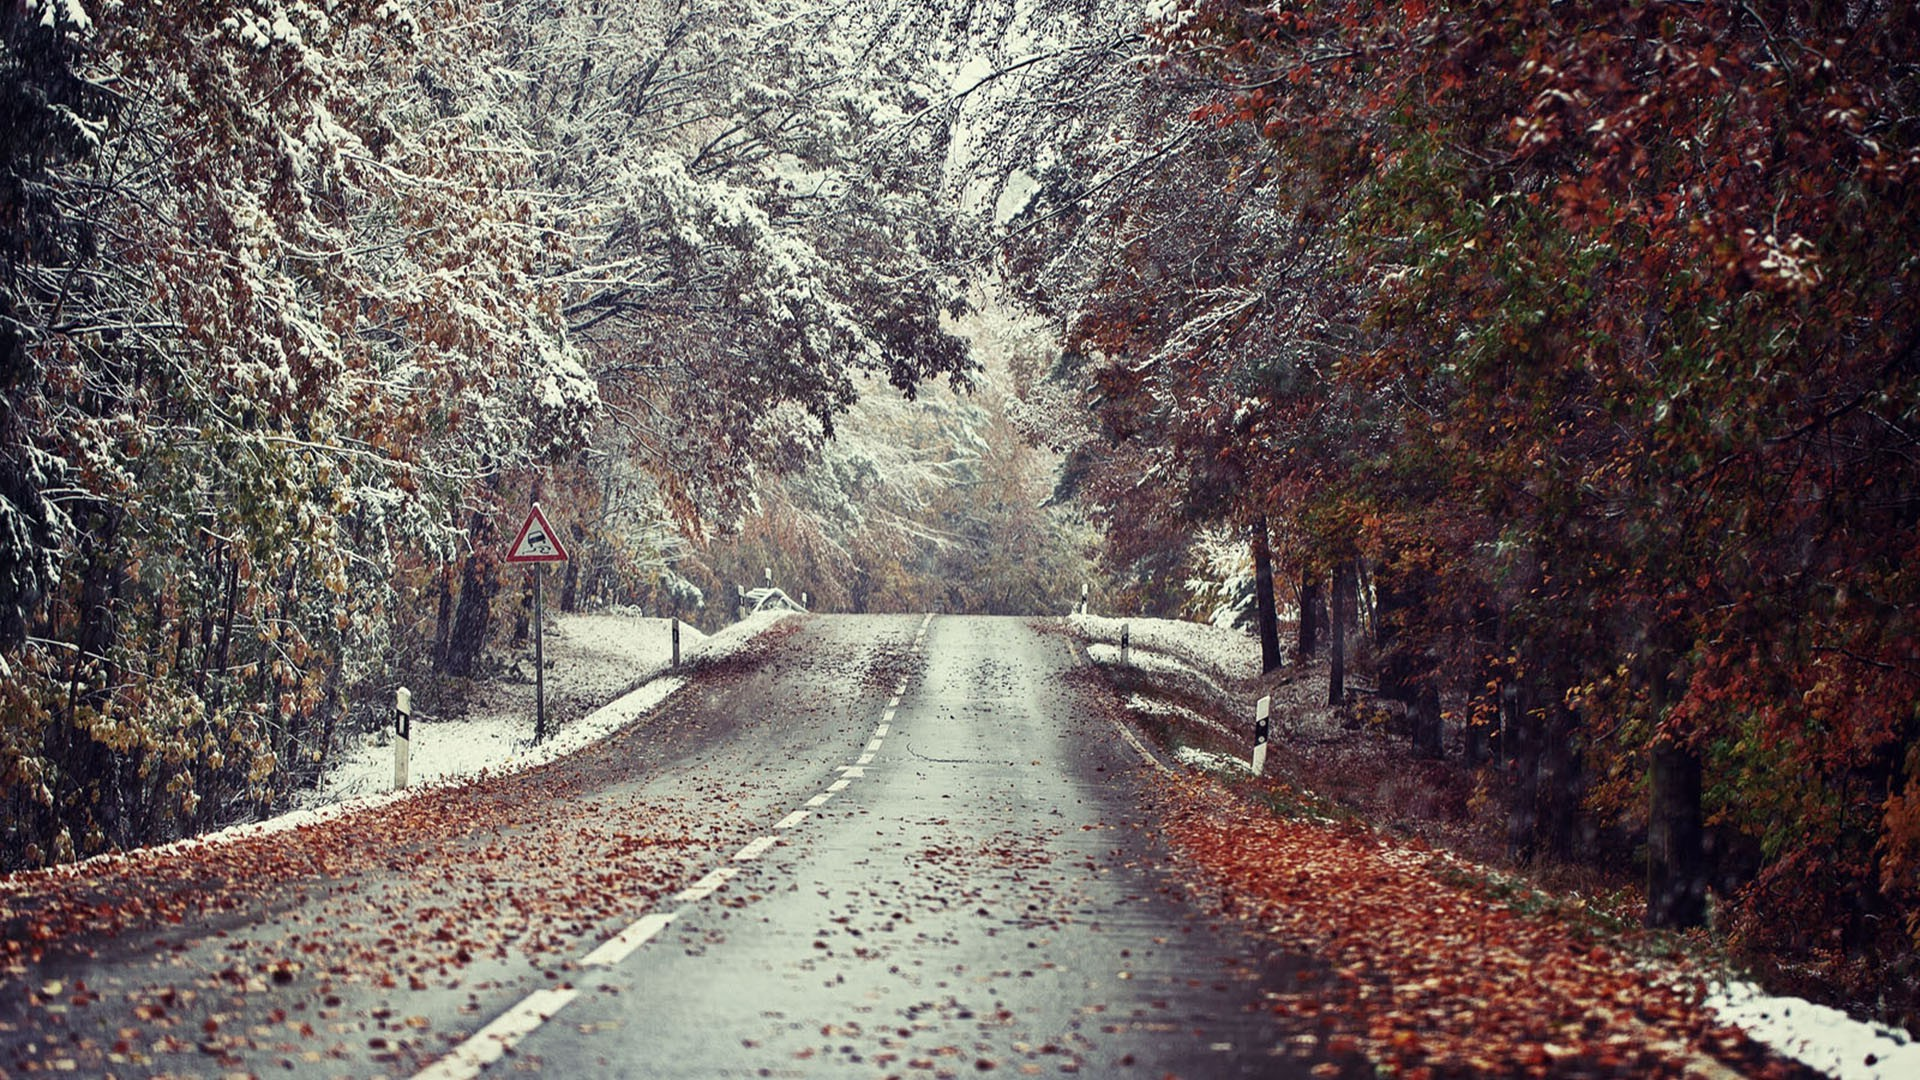 Fall Leaves Hd Mobile Wallpaper Winter Landscape Road Snow Leaves Wallpapers Hd